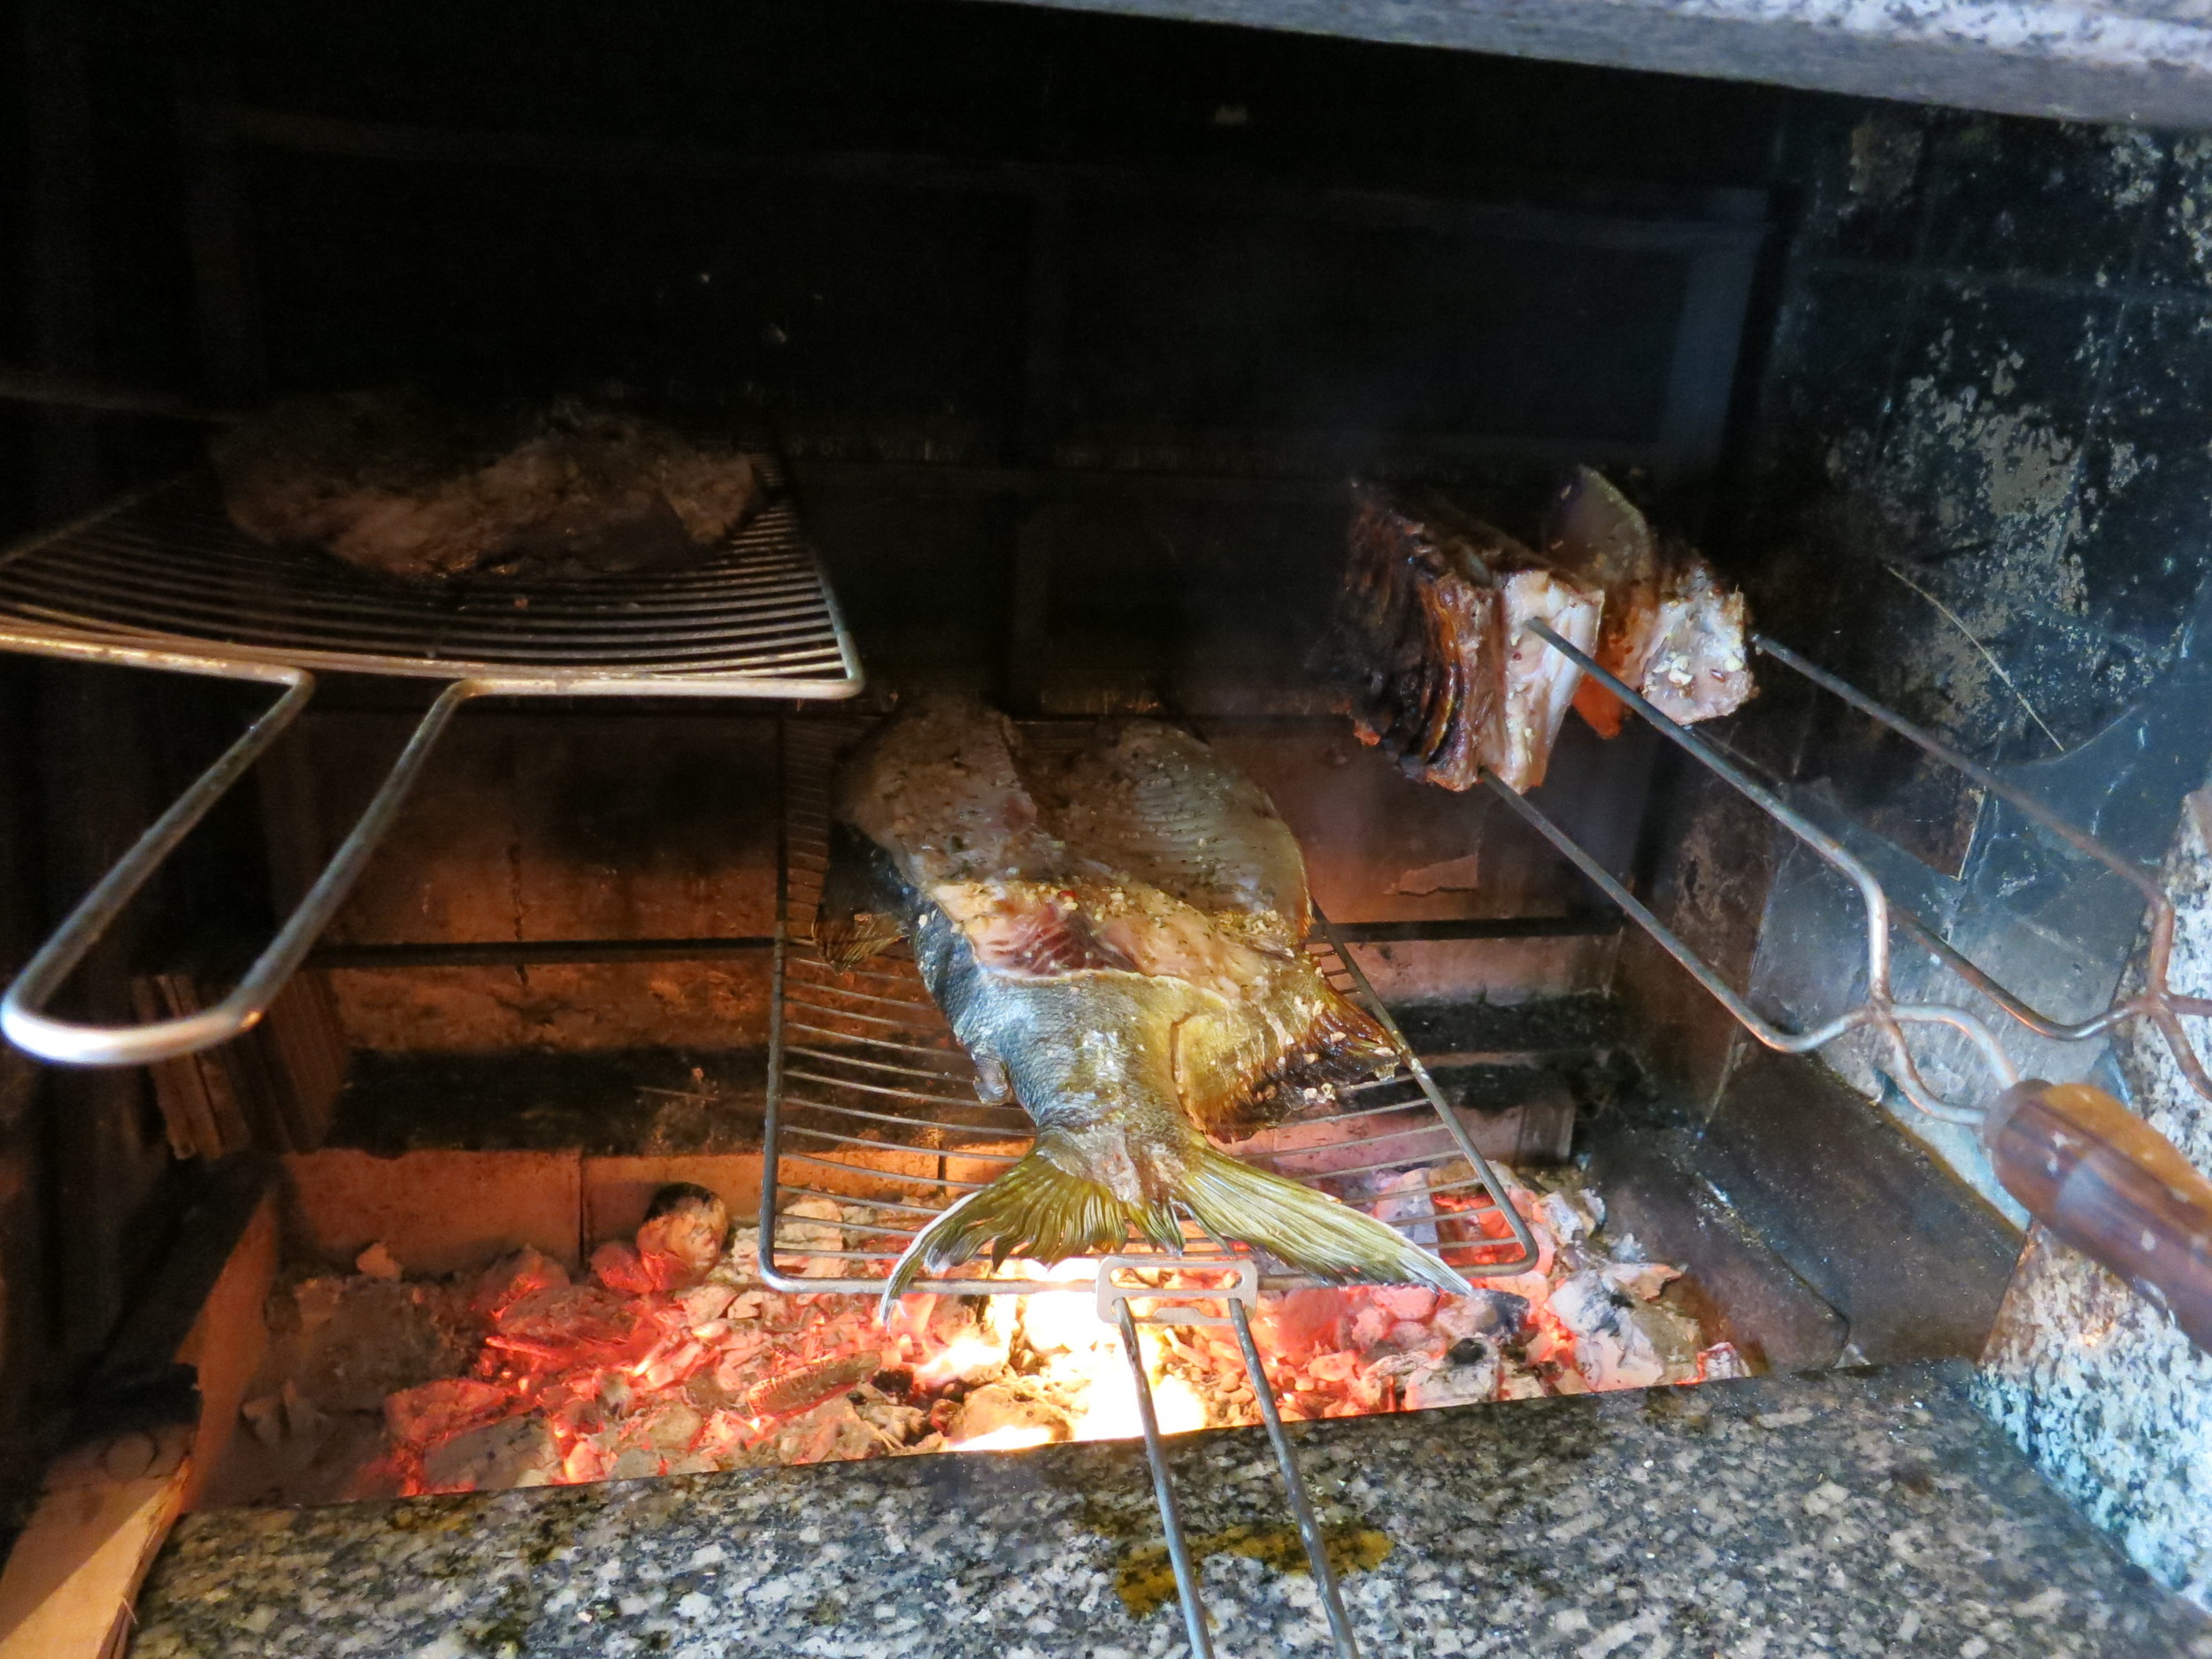 The bbq'd fish & meat